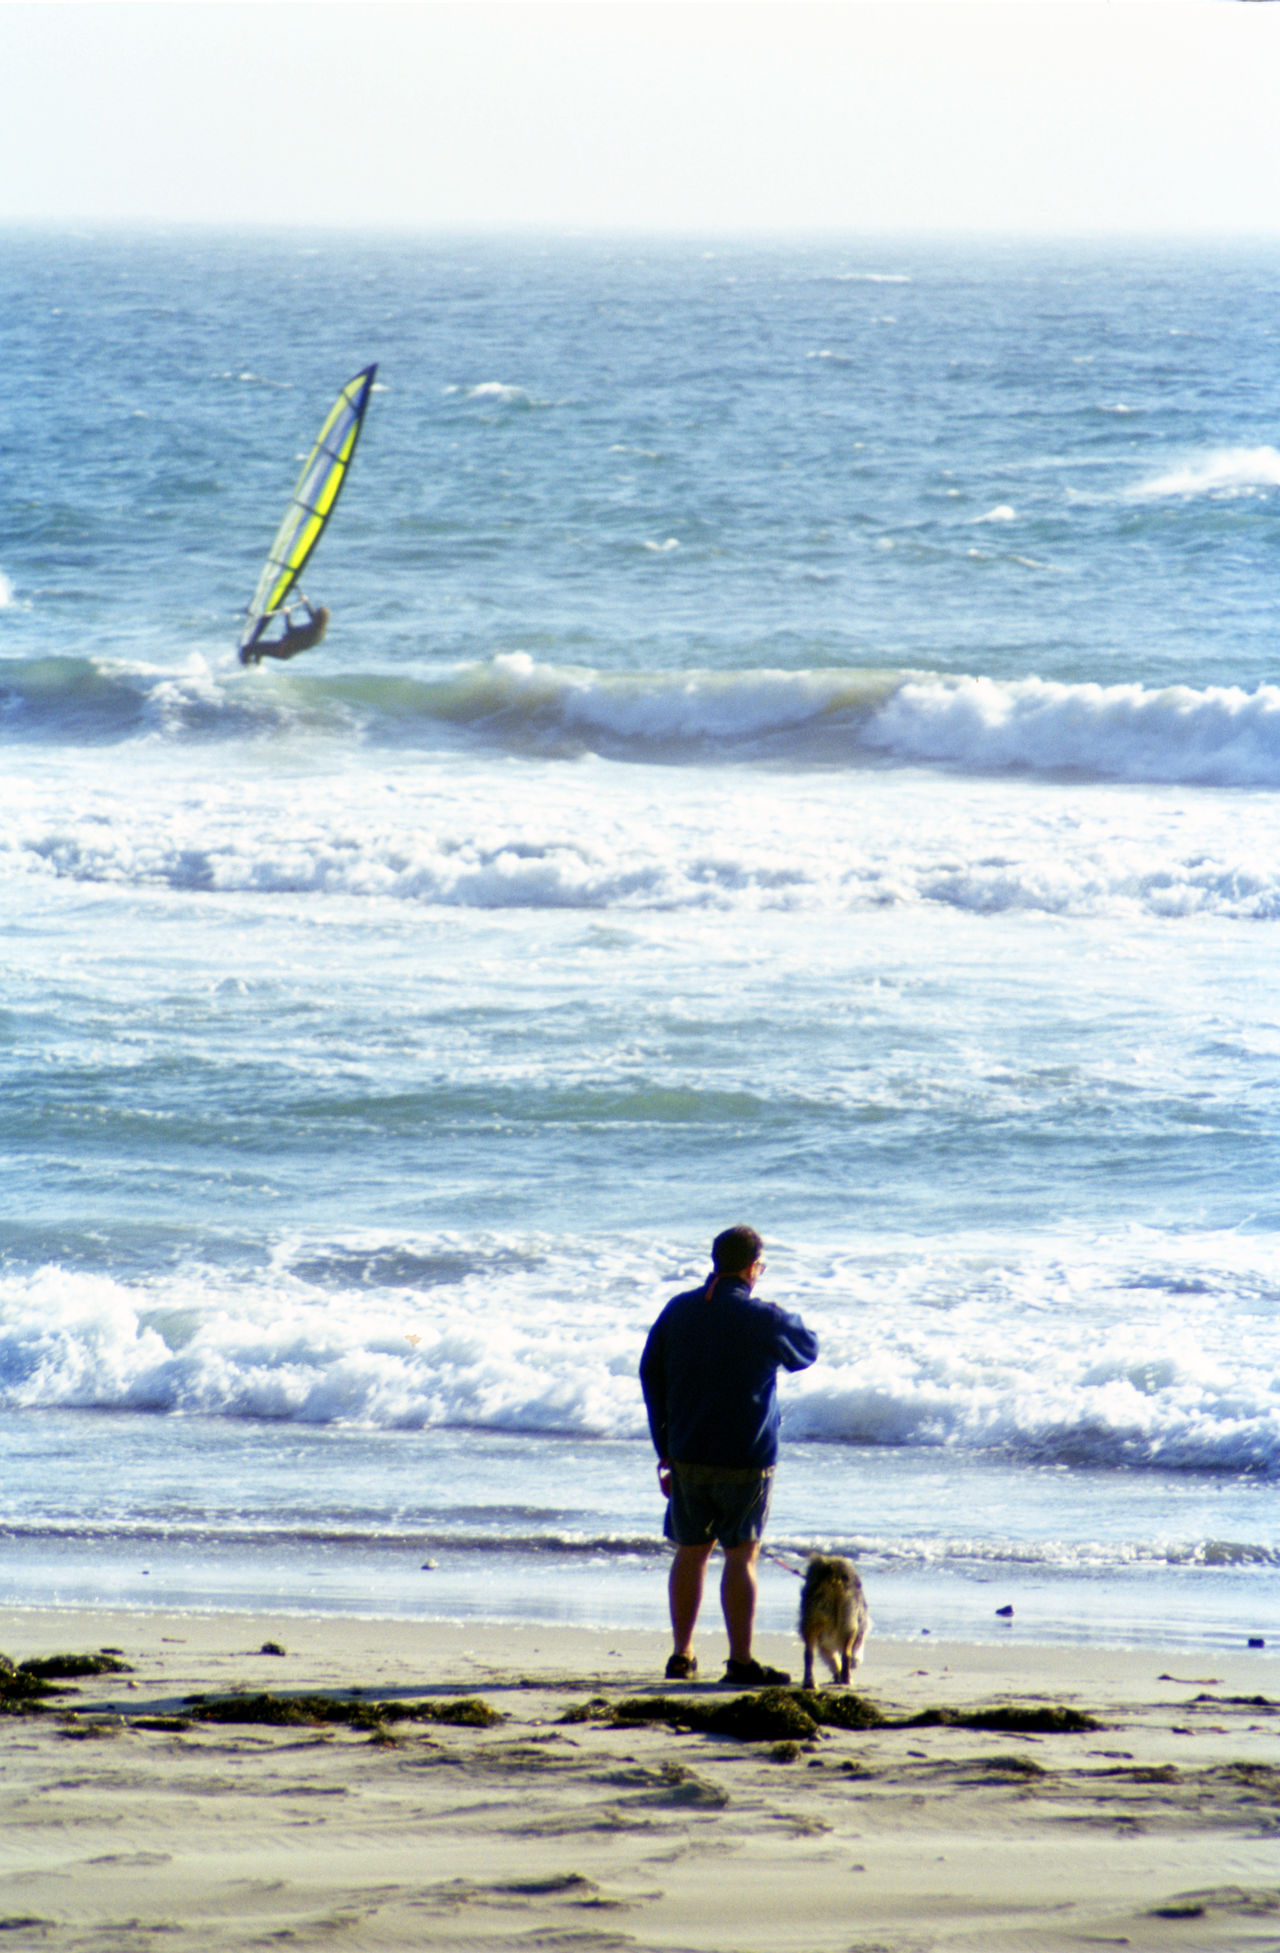 Man and dog watching wind surfer from the beach Dog Man Summer Beach Photography Beach California Oceanside Surf's Up Surfing Life Wind Surfing Wind Surf Wind Surfer California Coast Windsurf Life Windsurfer Surfer Windsurfing Windsurfers Windsurf Catching Waves Beach Life Surf Photography Surfers Paradise Beachphotography Ocean